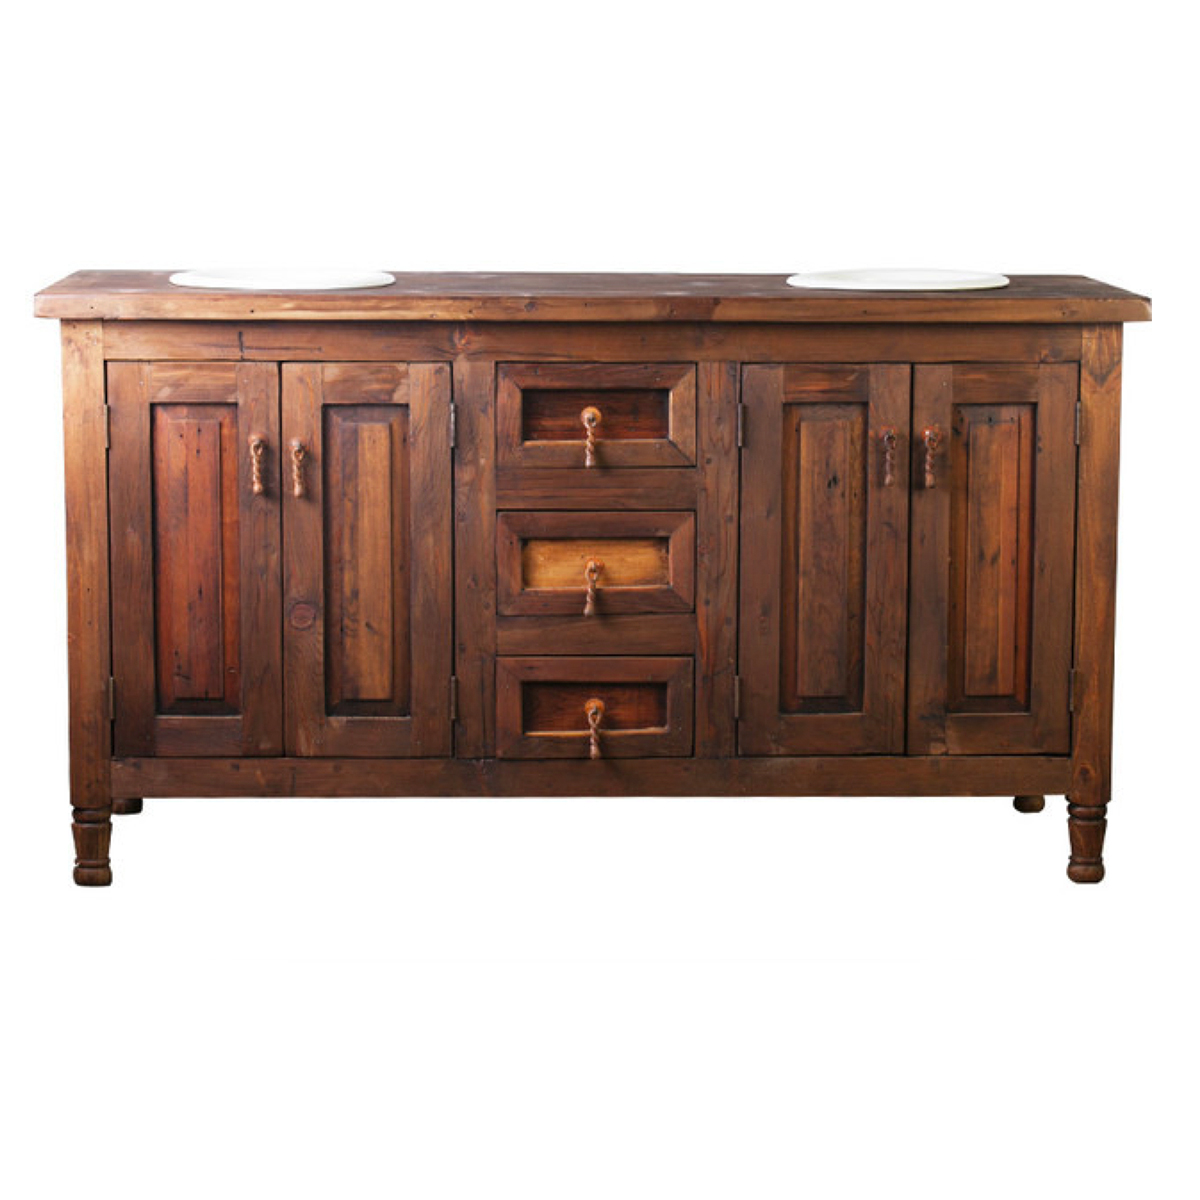 28 Unique Bathroom Vanities Rustic Wood